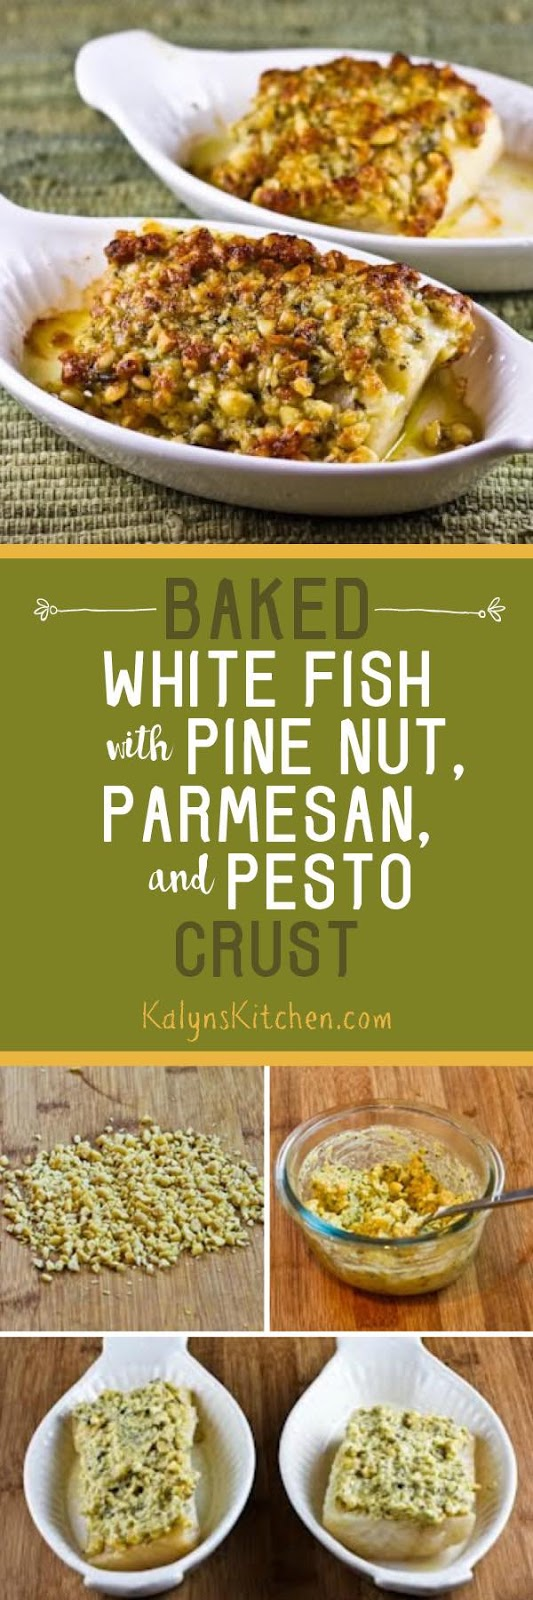 Baked White Fish With Pine Nut Parmesan And Basil Pesto Crust